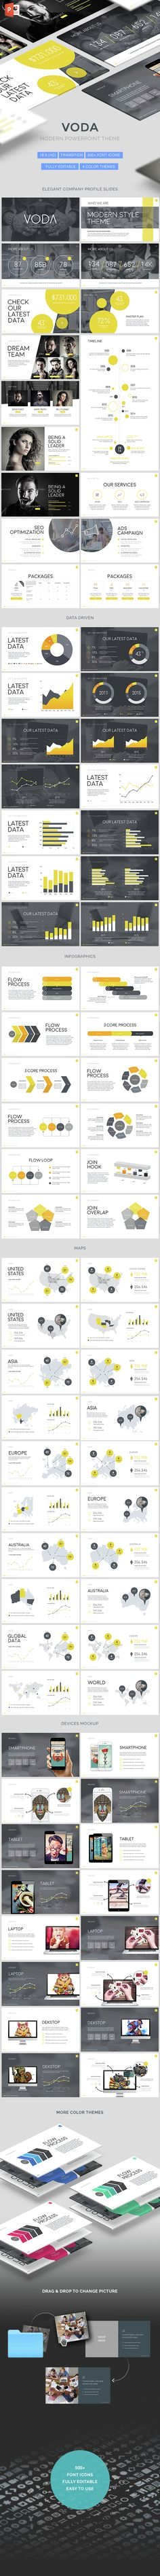 Voda - Creative Powerpoint Template (PowerPoint Templates)